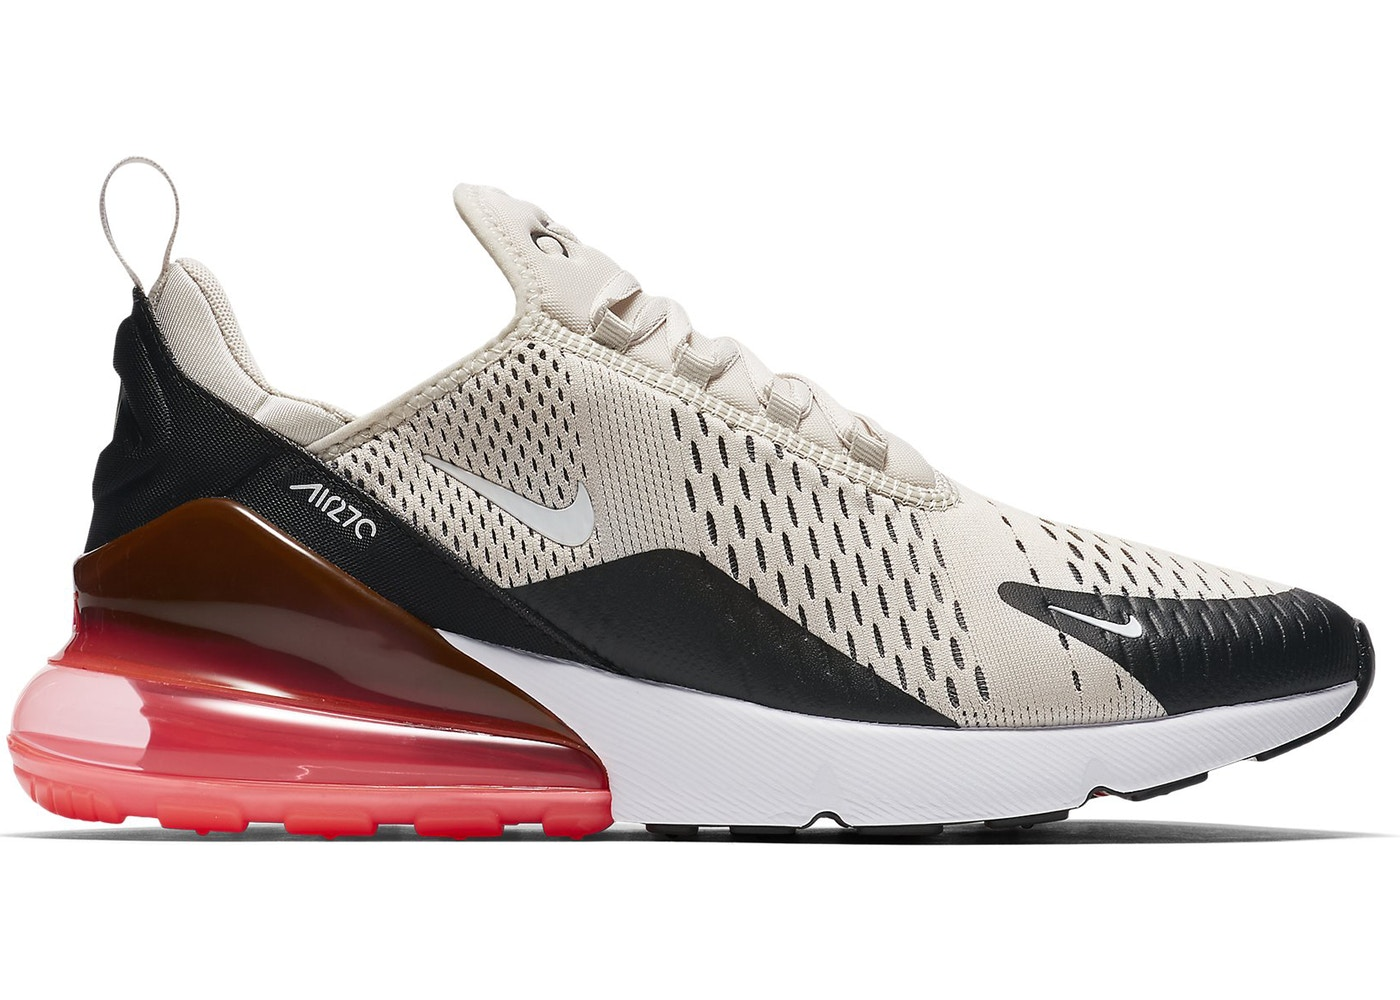 best selling new arrival finest selection Air Max 270 Light Bone Hot Punch